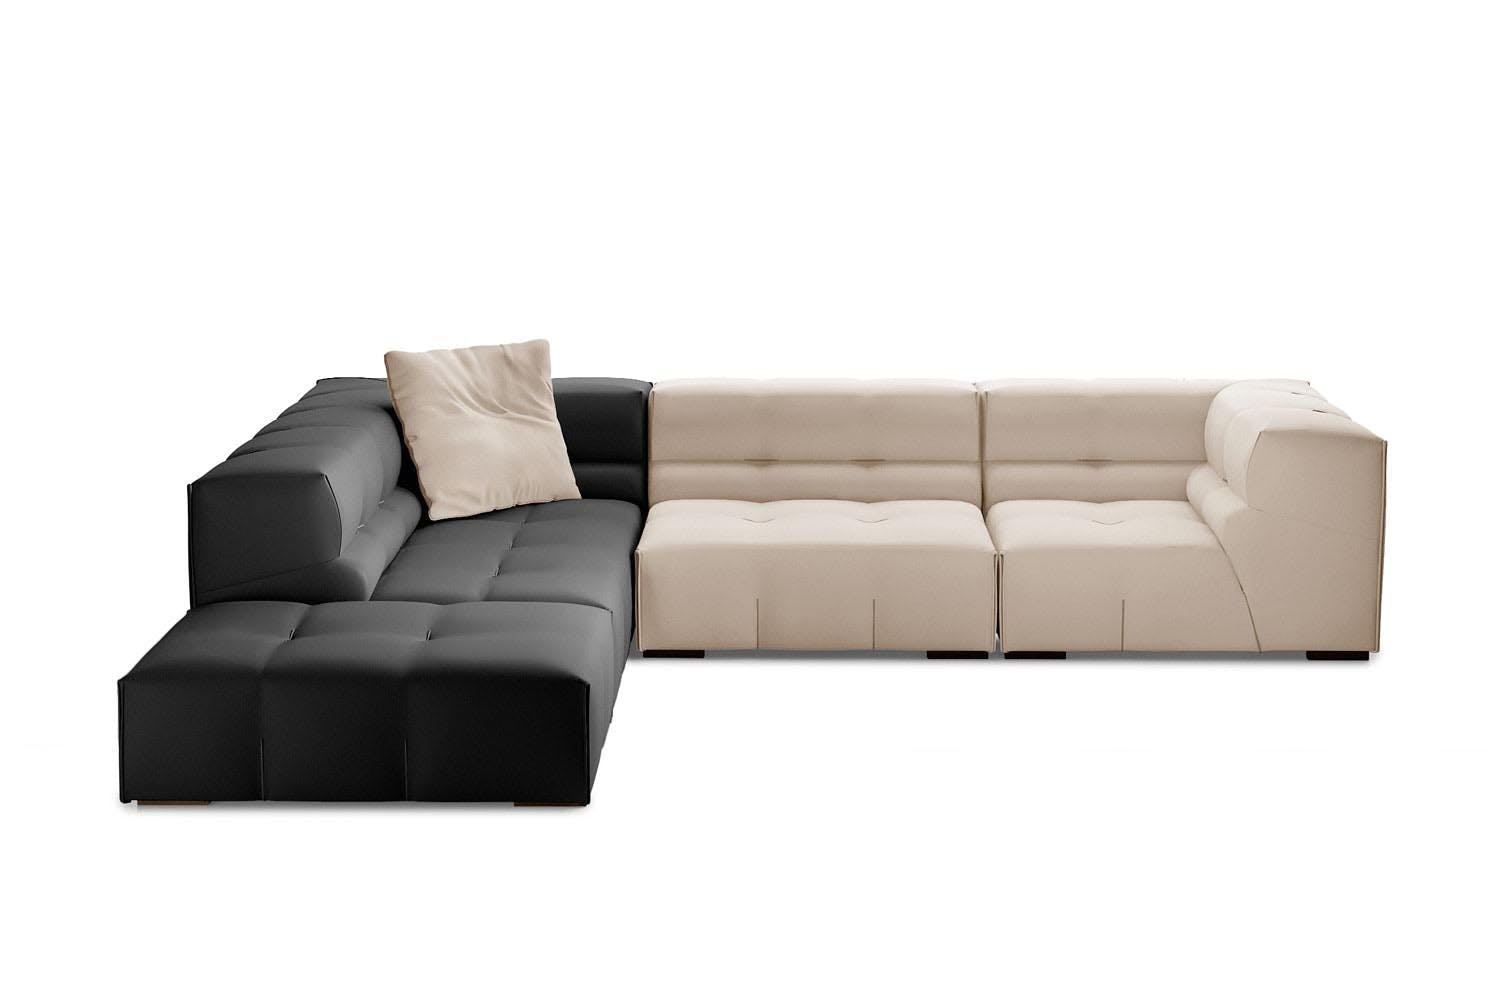 tufty too sofa by patricia urquiola for b b italia space. Black Bedroom Furniture Sets. Home Design Ideas